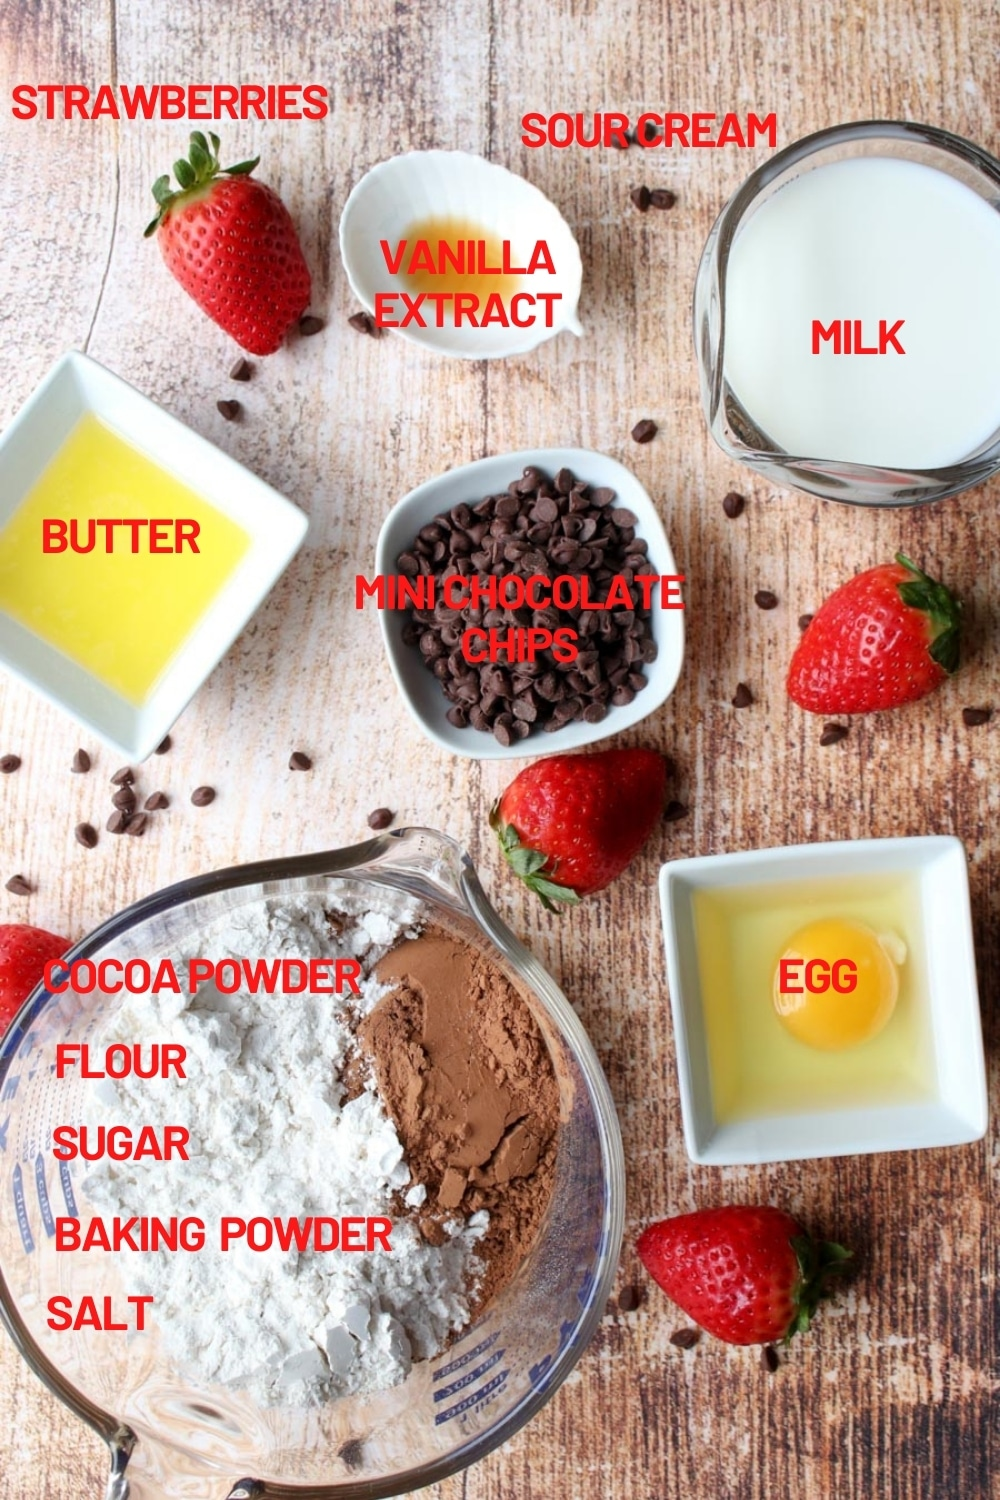 Ingredients for chocolate dessert tacos